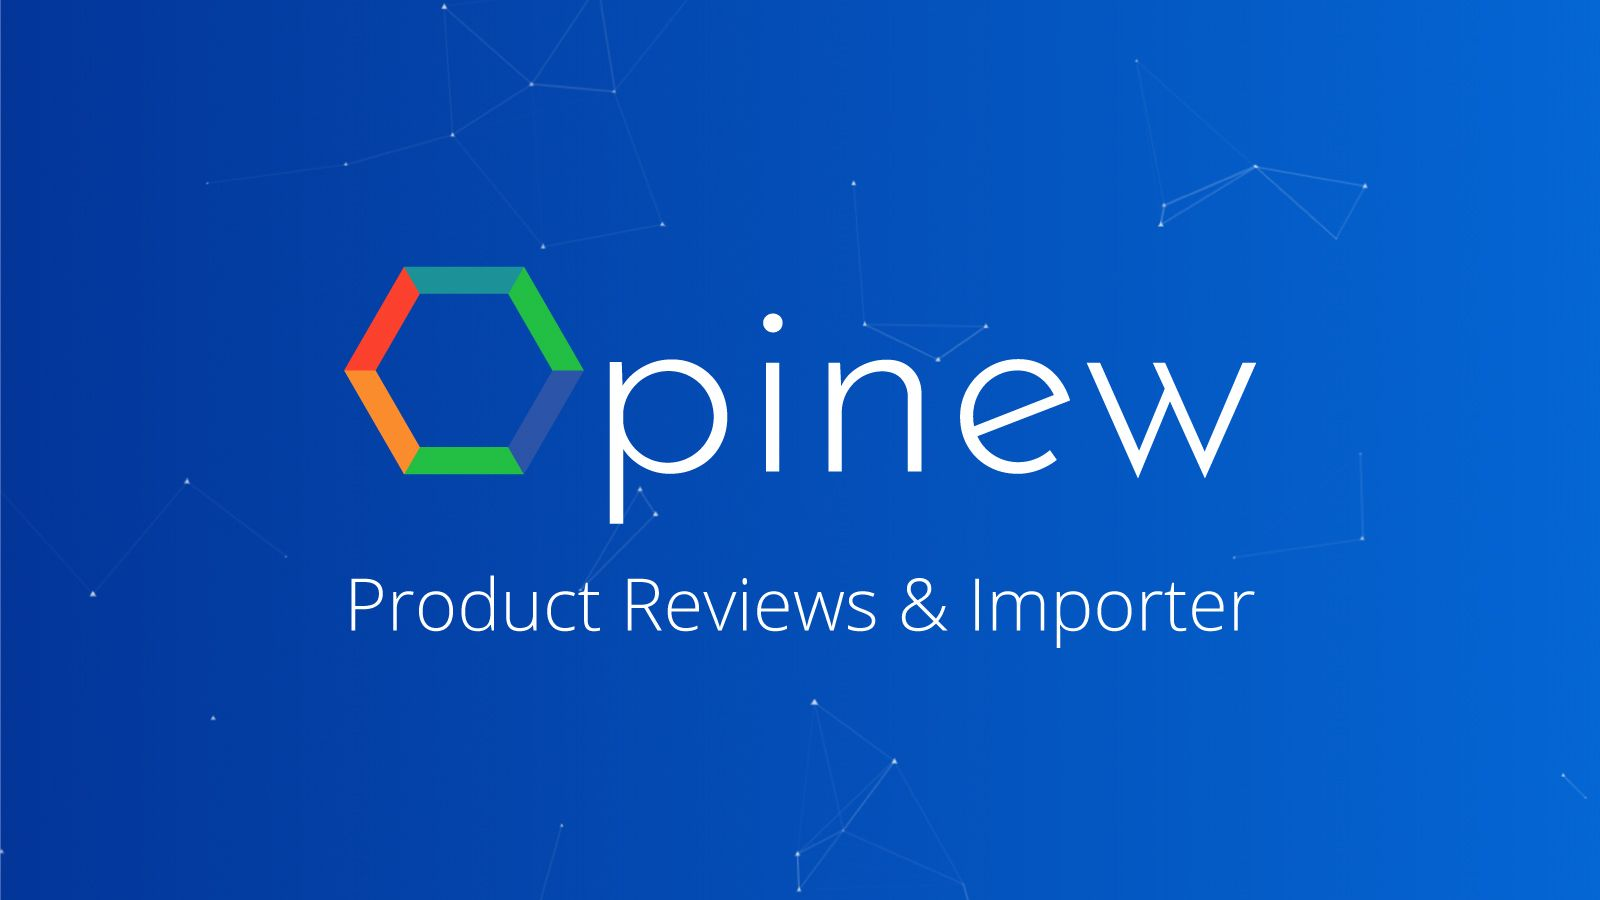 Opinew collects product reviews with option to add photos from customers. Import from Amazon, Aliexpress and Ebay, making it easy to get started.